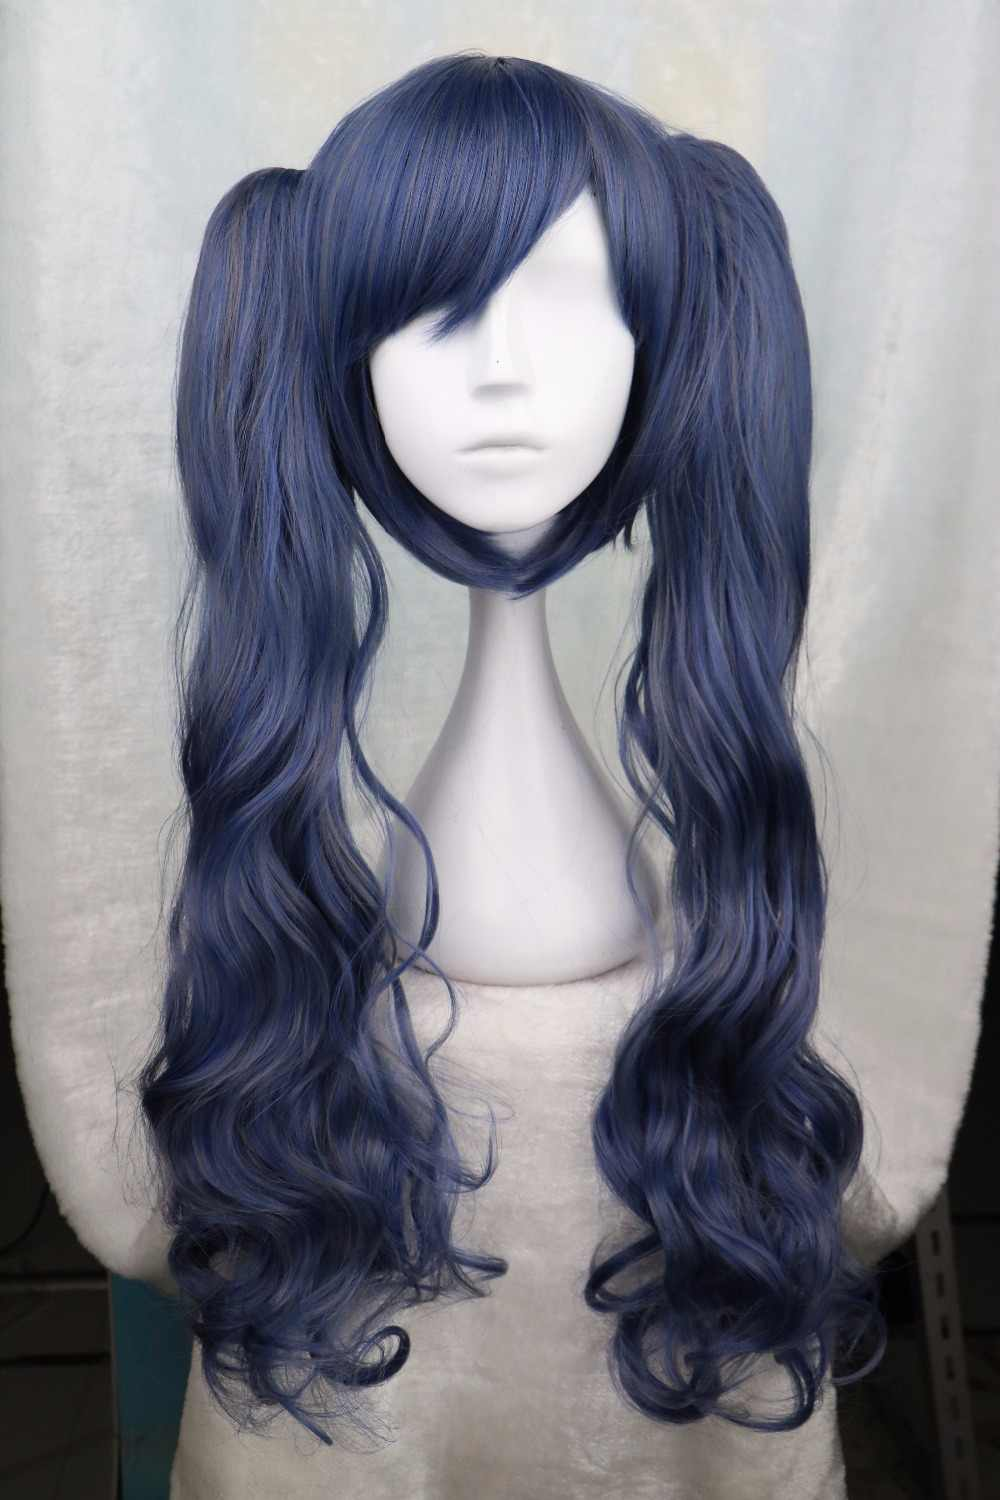 Black Butler Kuroshitsuji Ciel Phantomhive Cross-dressing Girl  Cosplay Wig Drak Blue